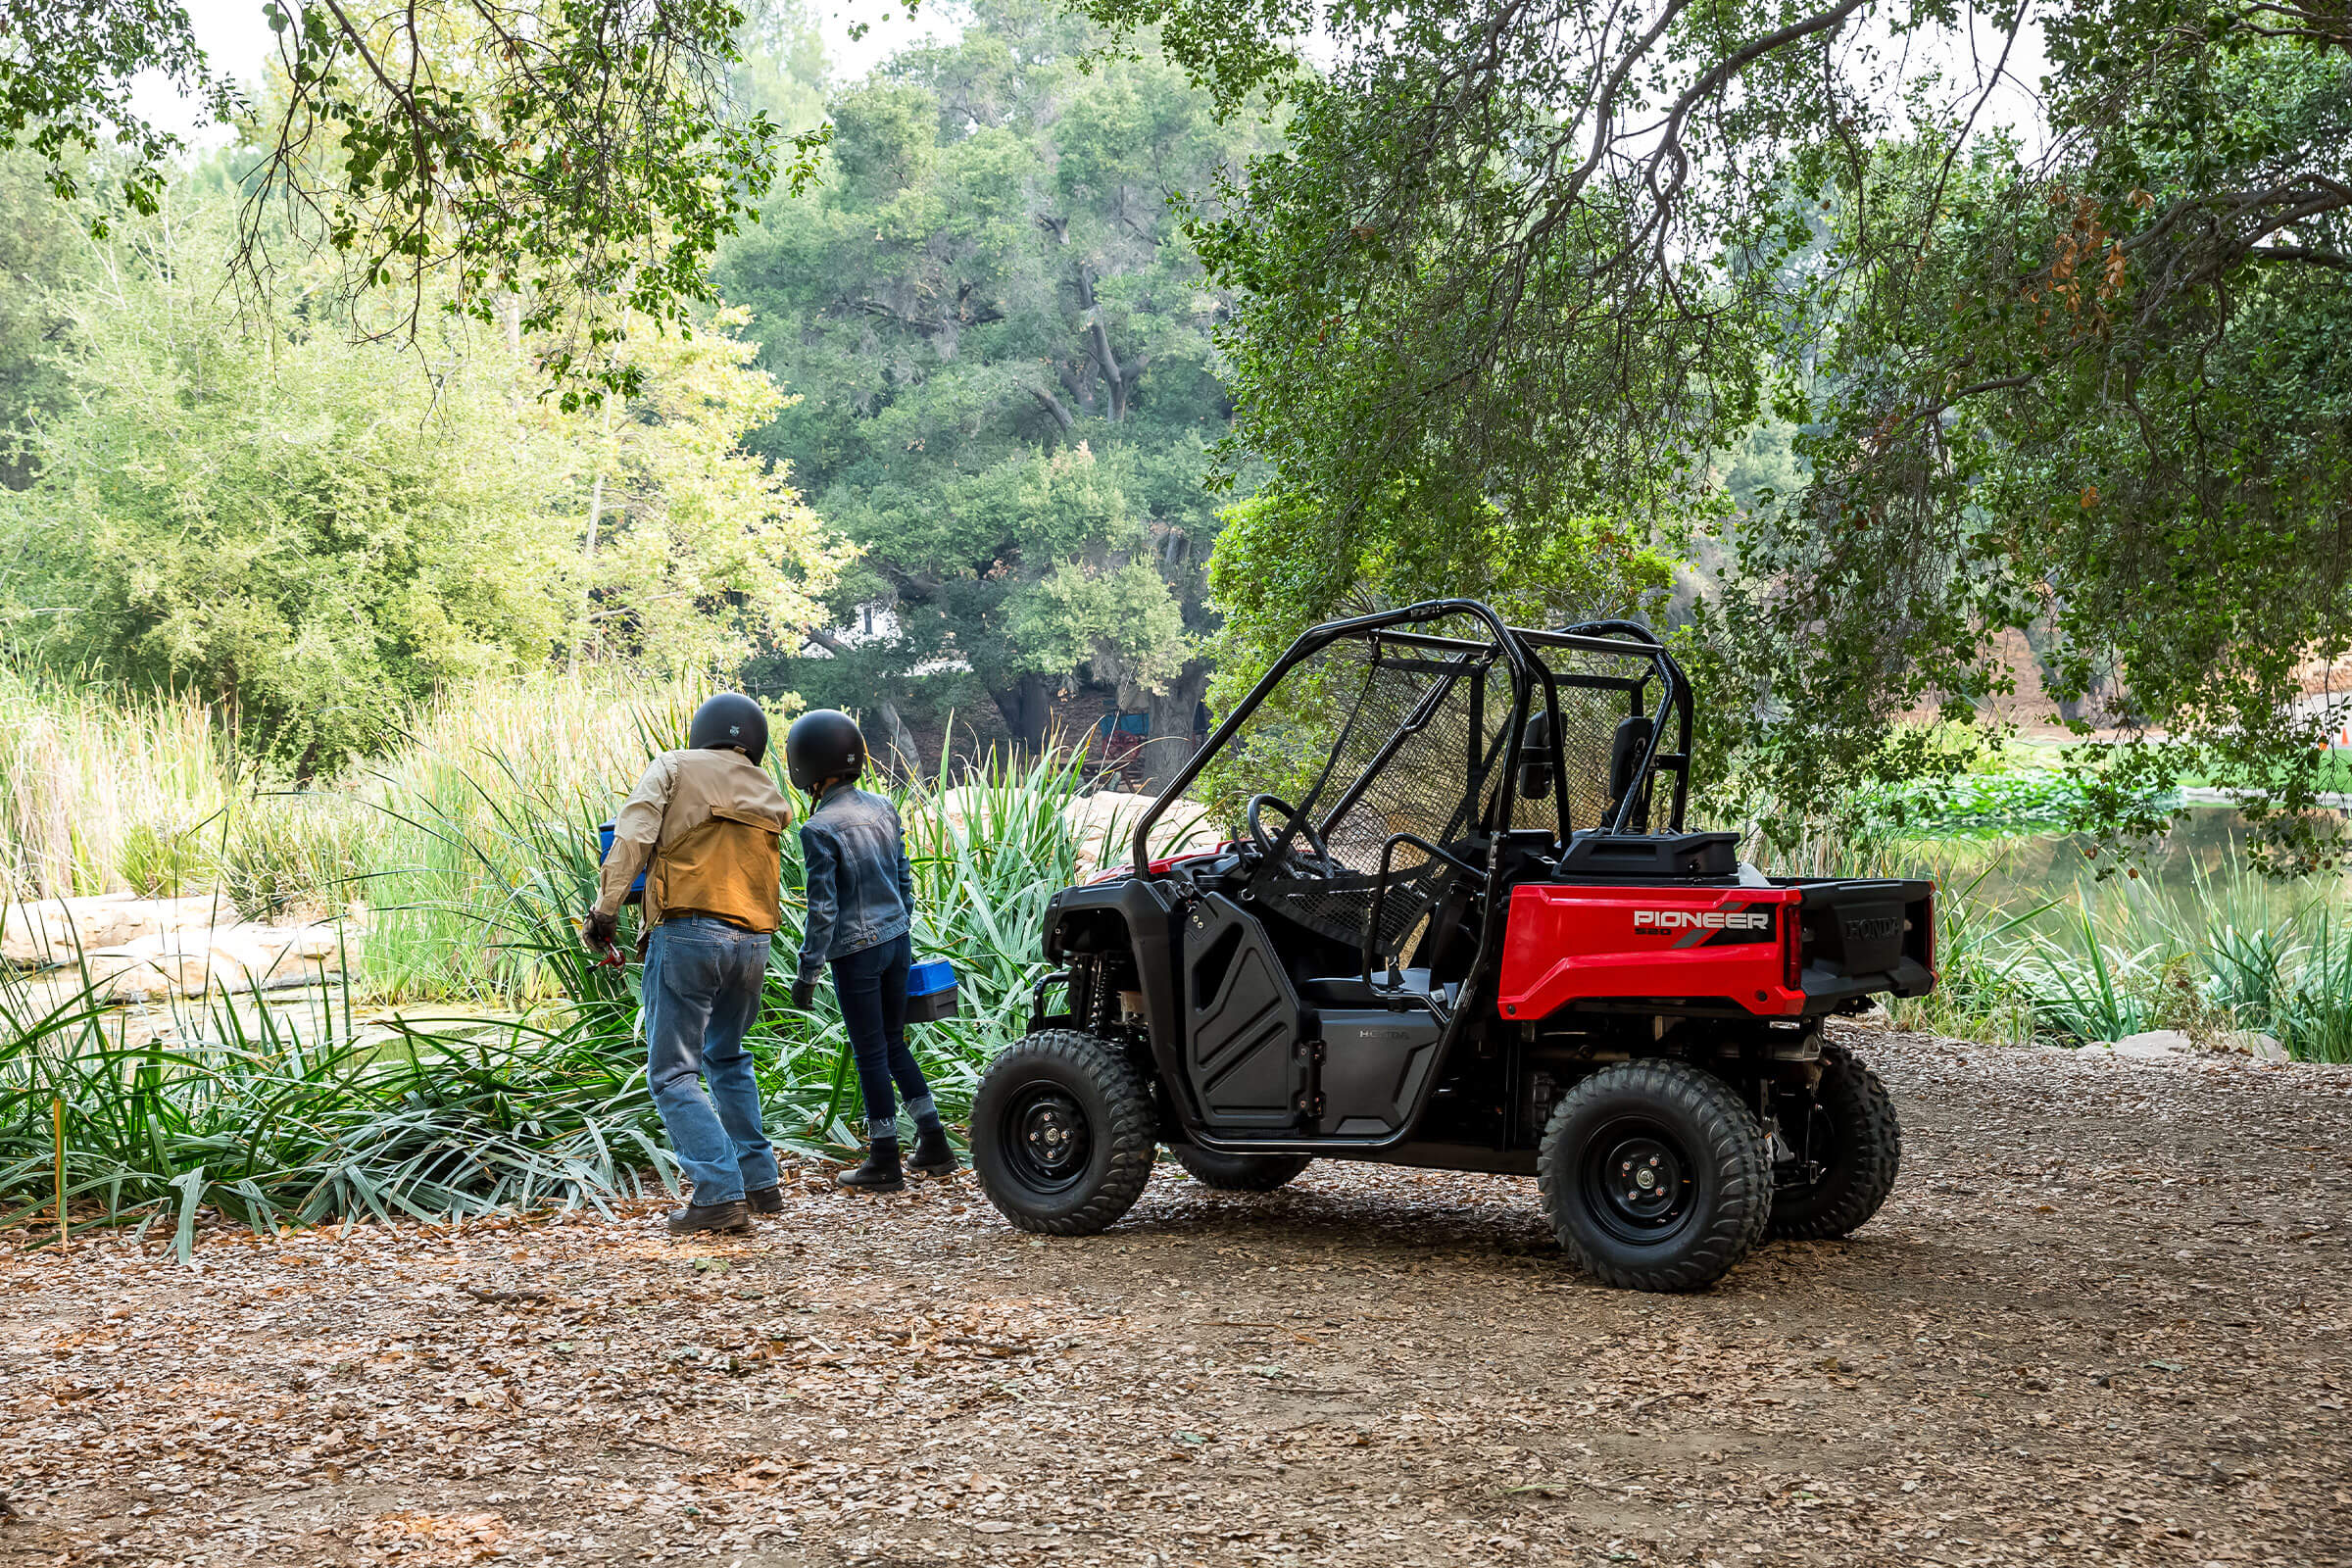 2021 Honda Pioneer 520 in Hendersonville, North Carolina - Photo 2